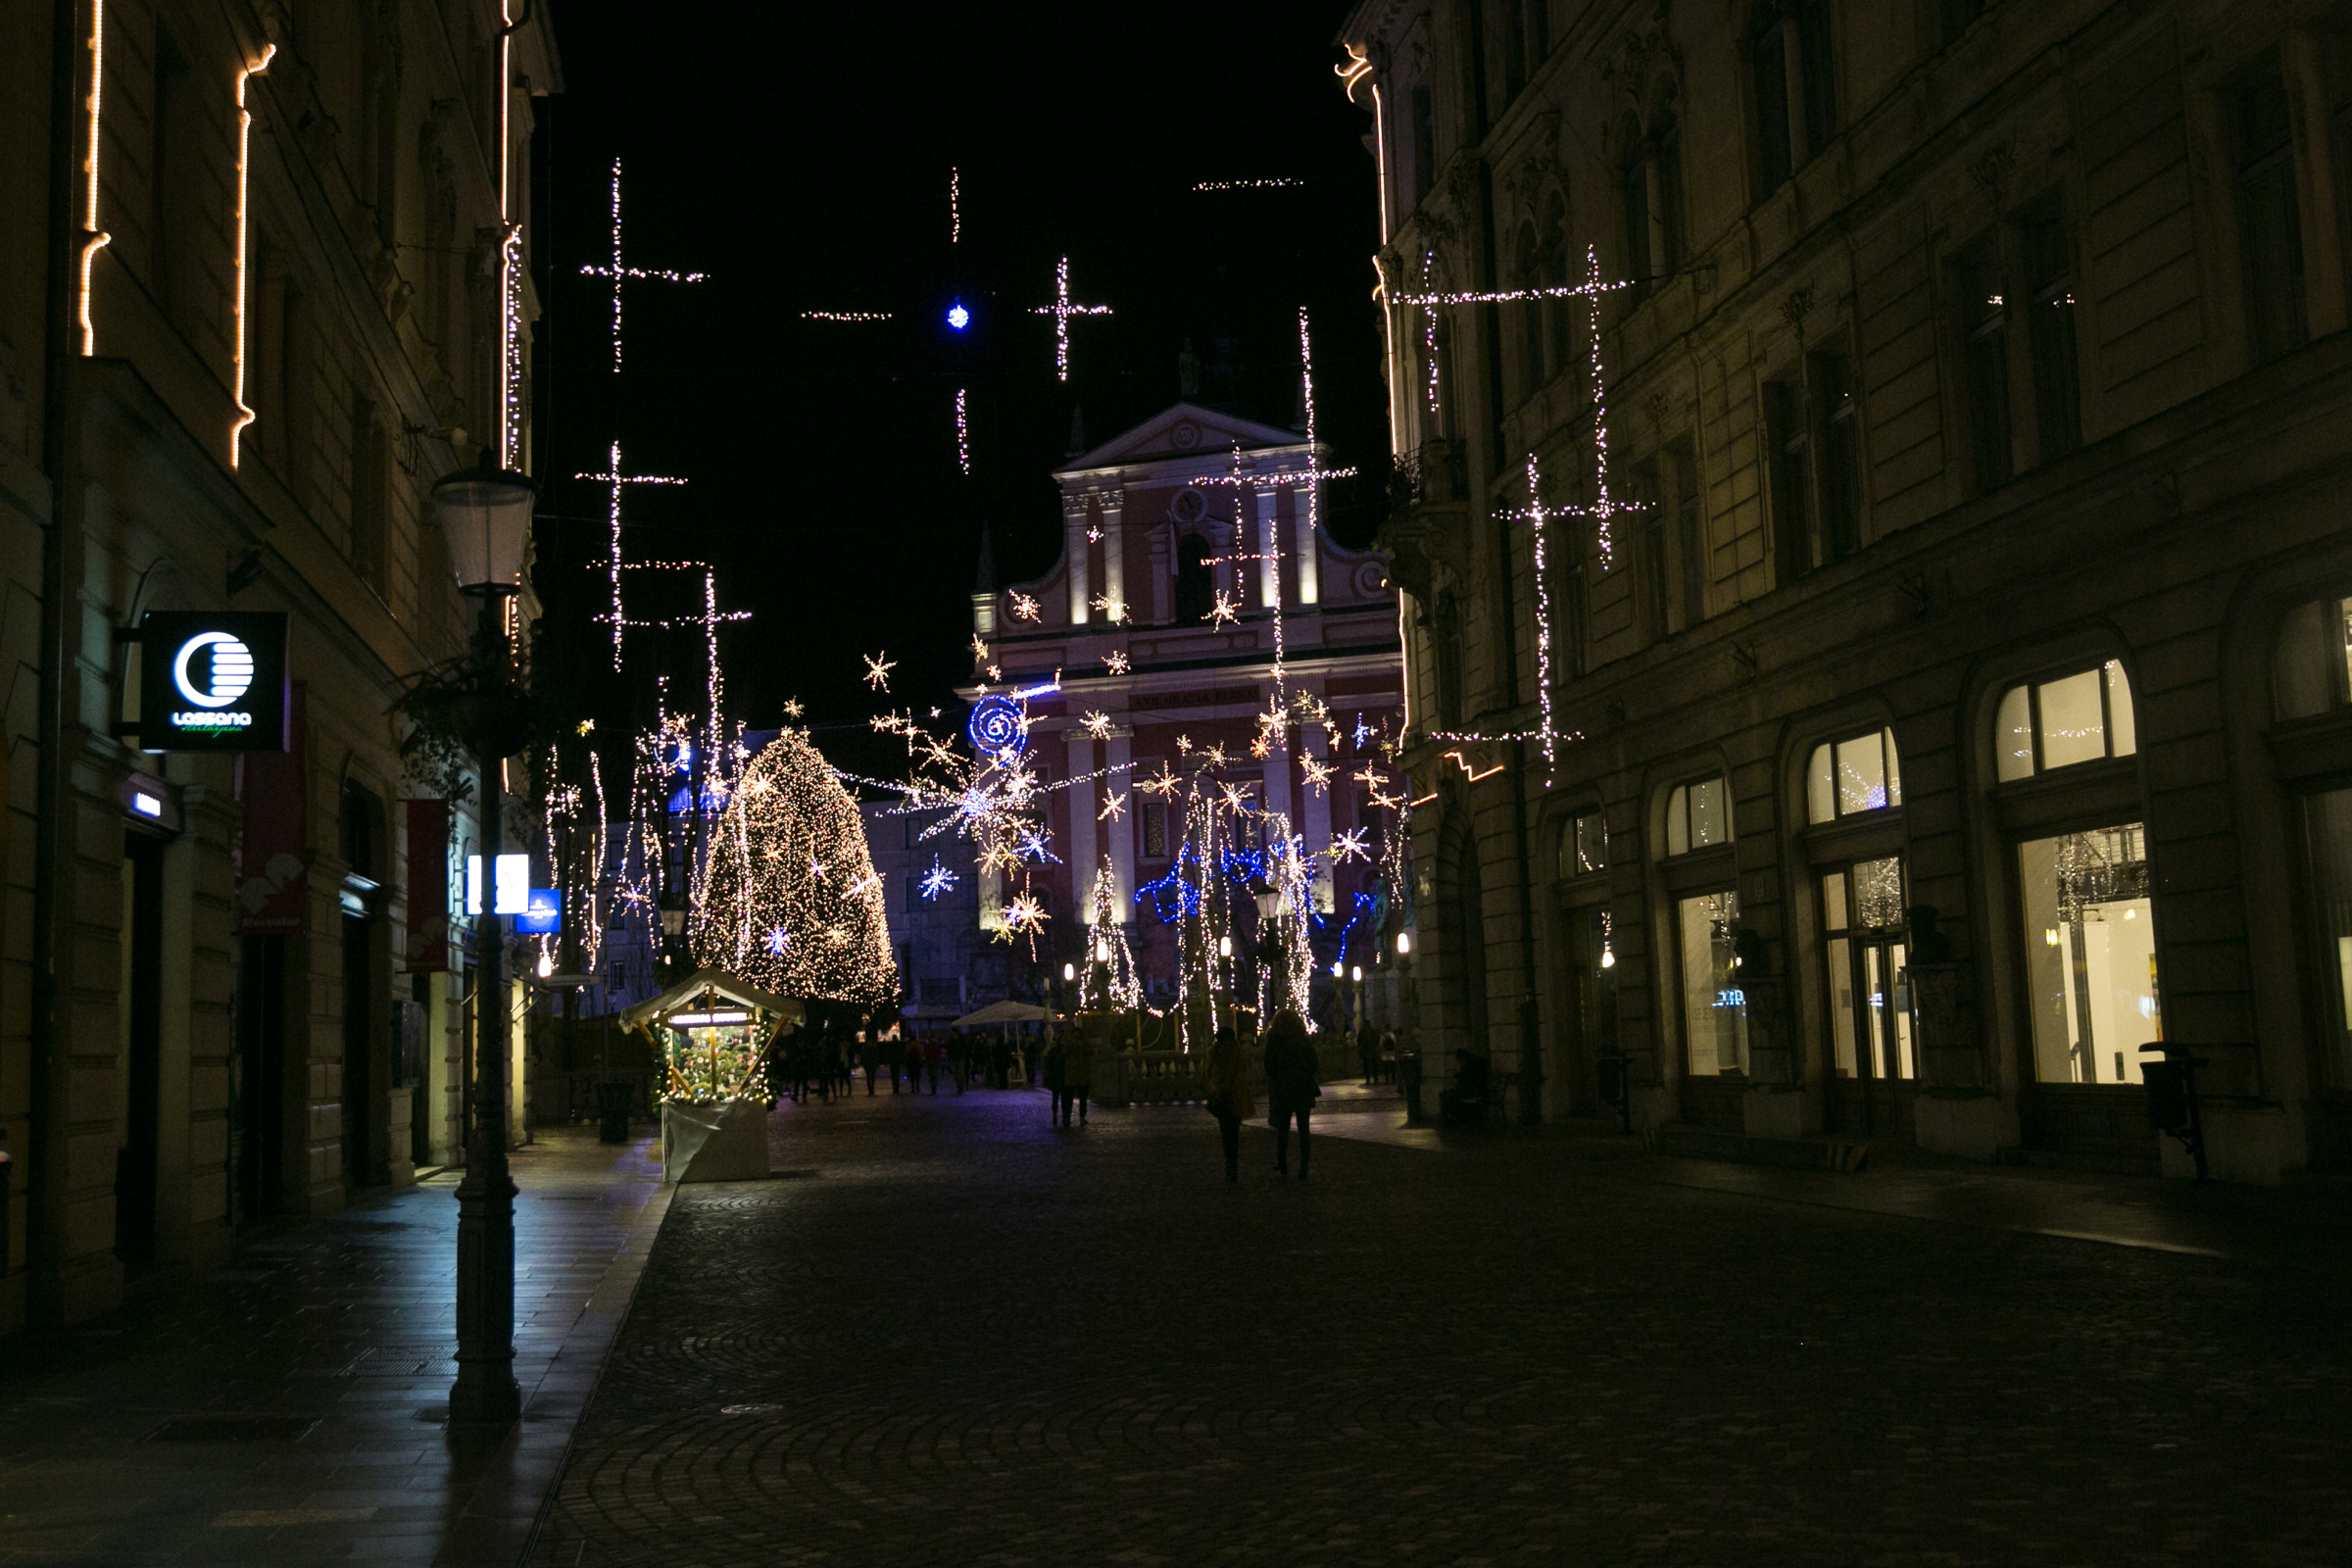 new-year-in-ljubljana-slovenia-europe-eu-slo-minas-planet-jasmina-haskovic17.jpg